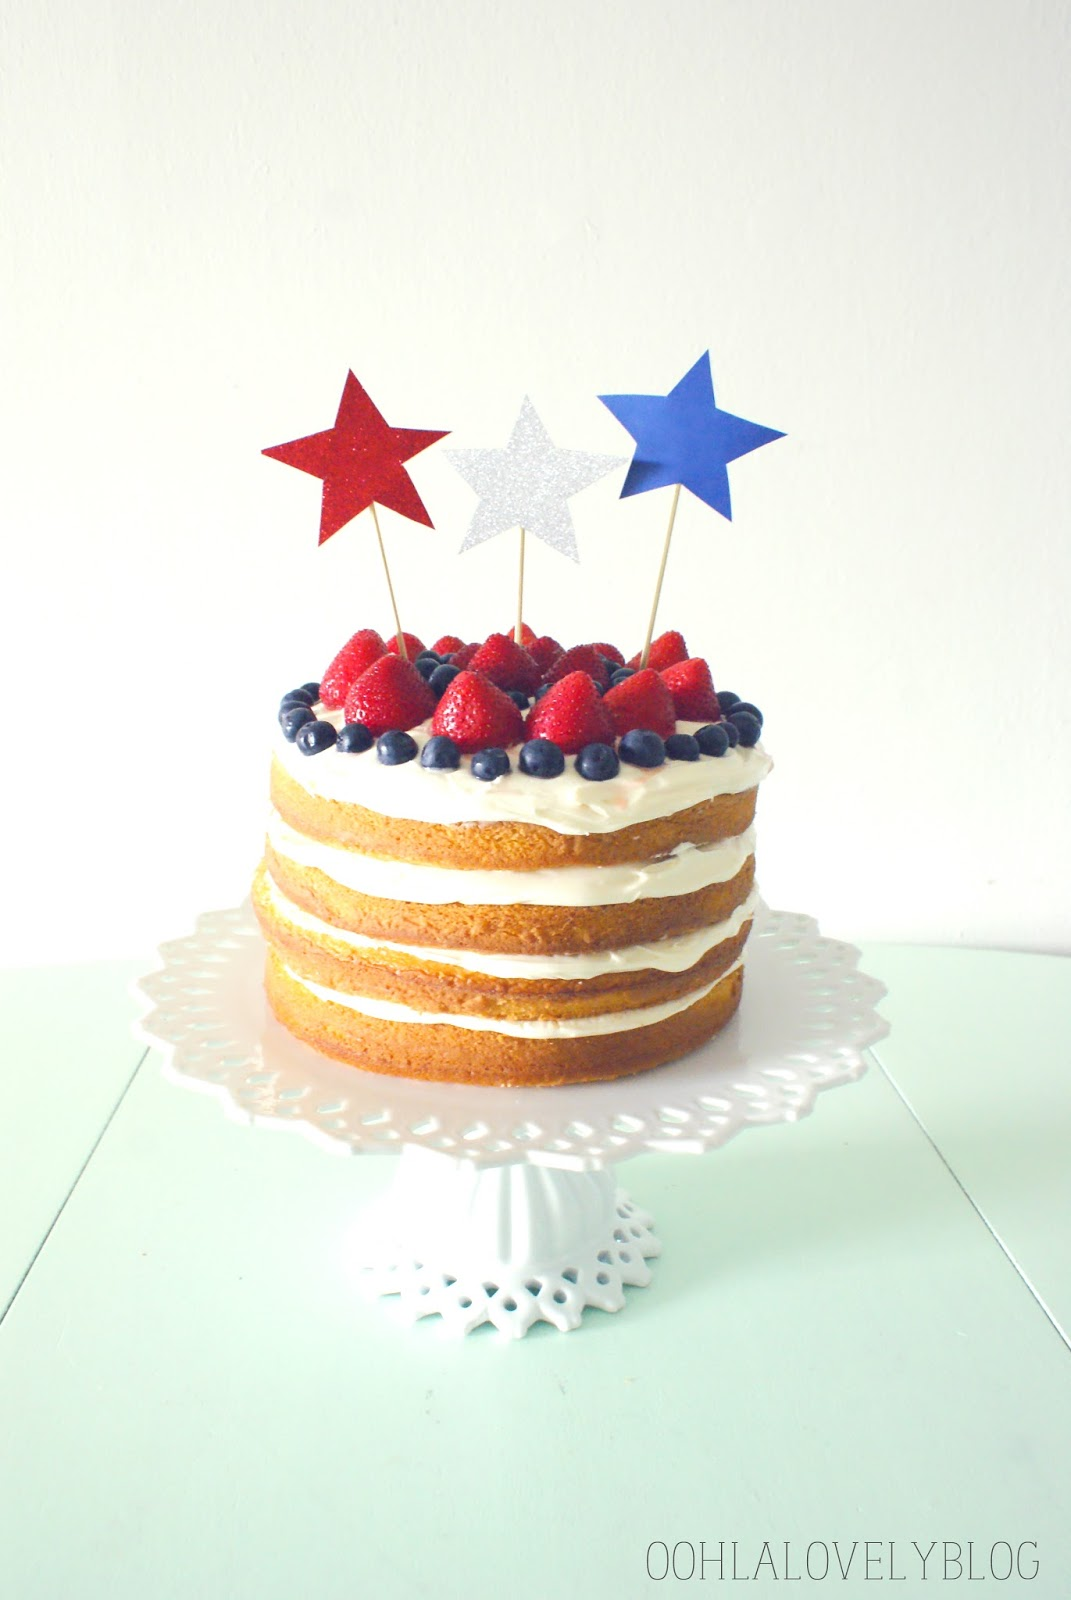 Naked for the 4th Cake from Ooh La Lovely